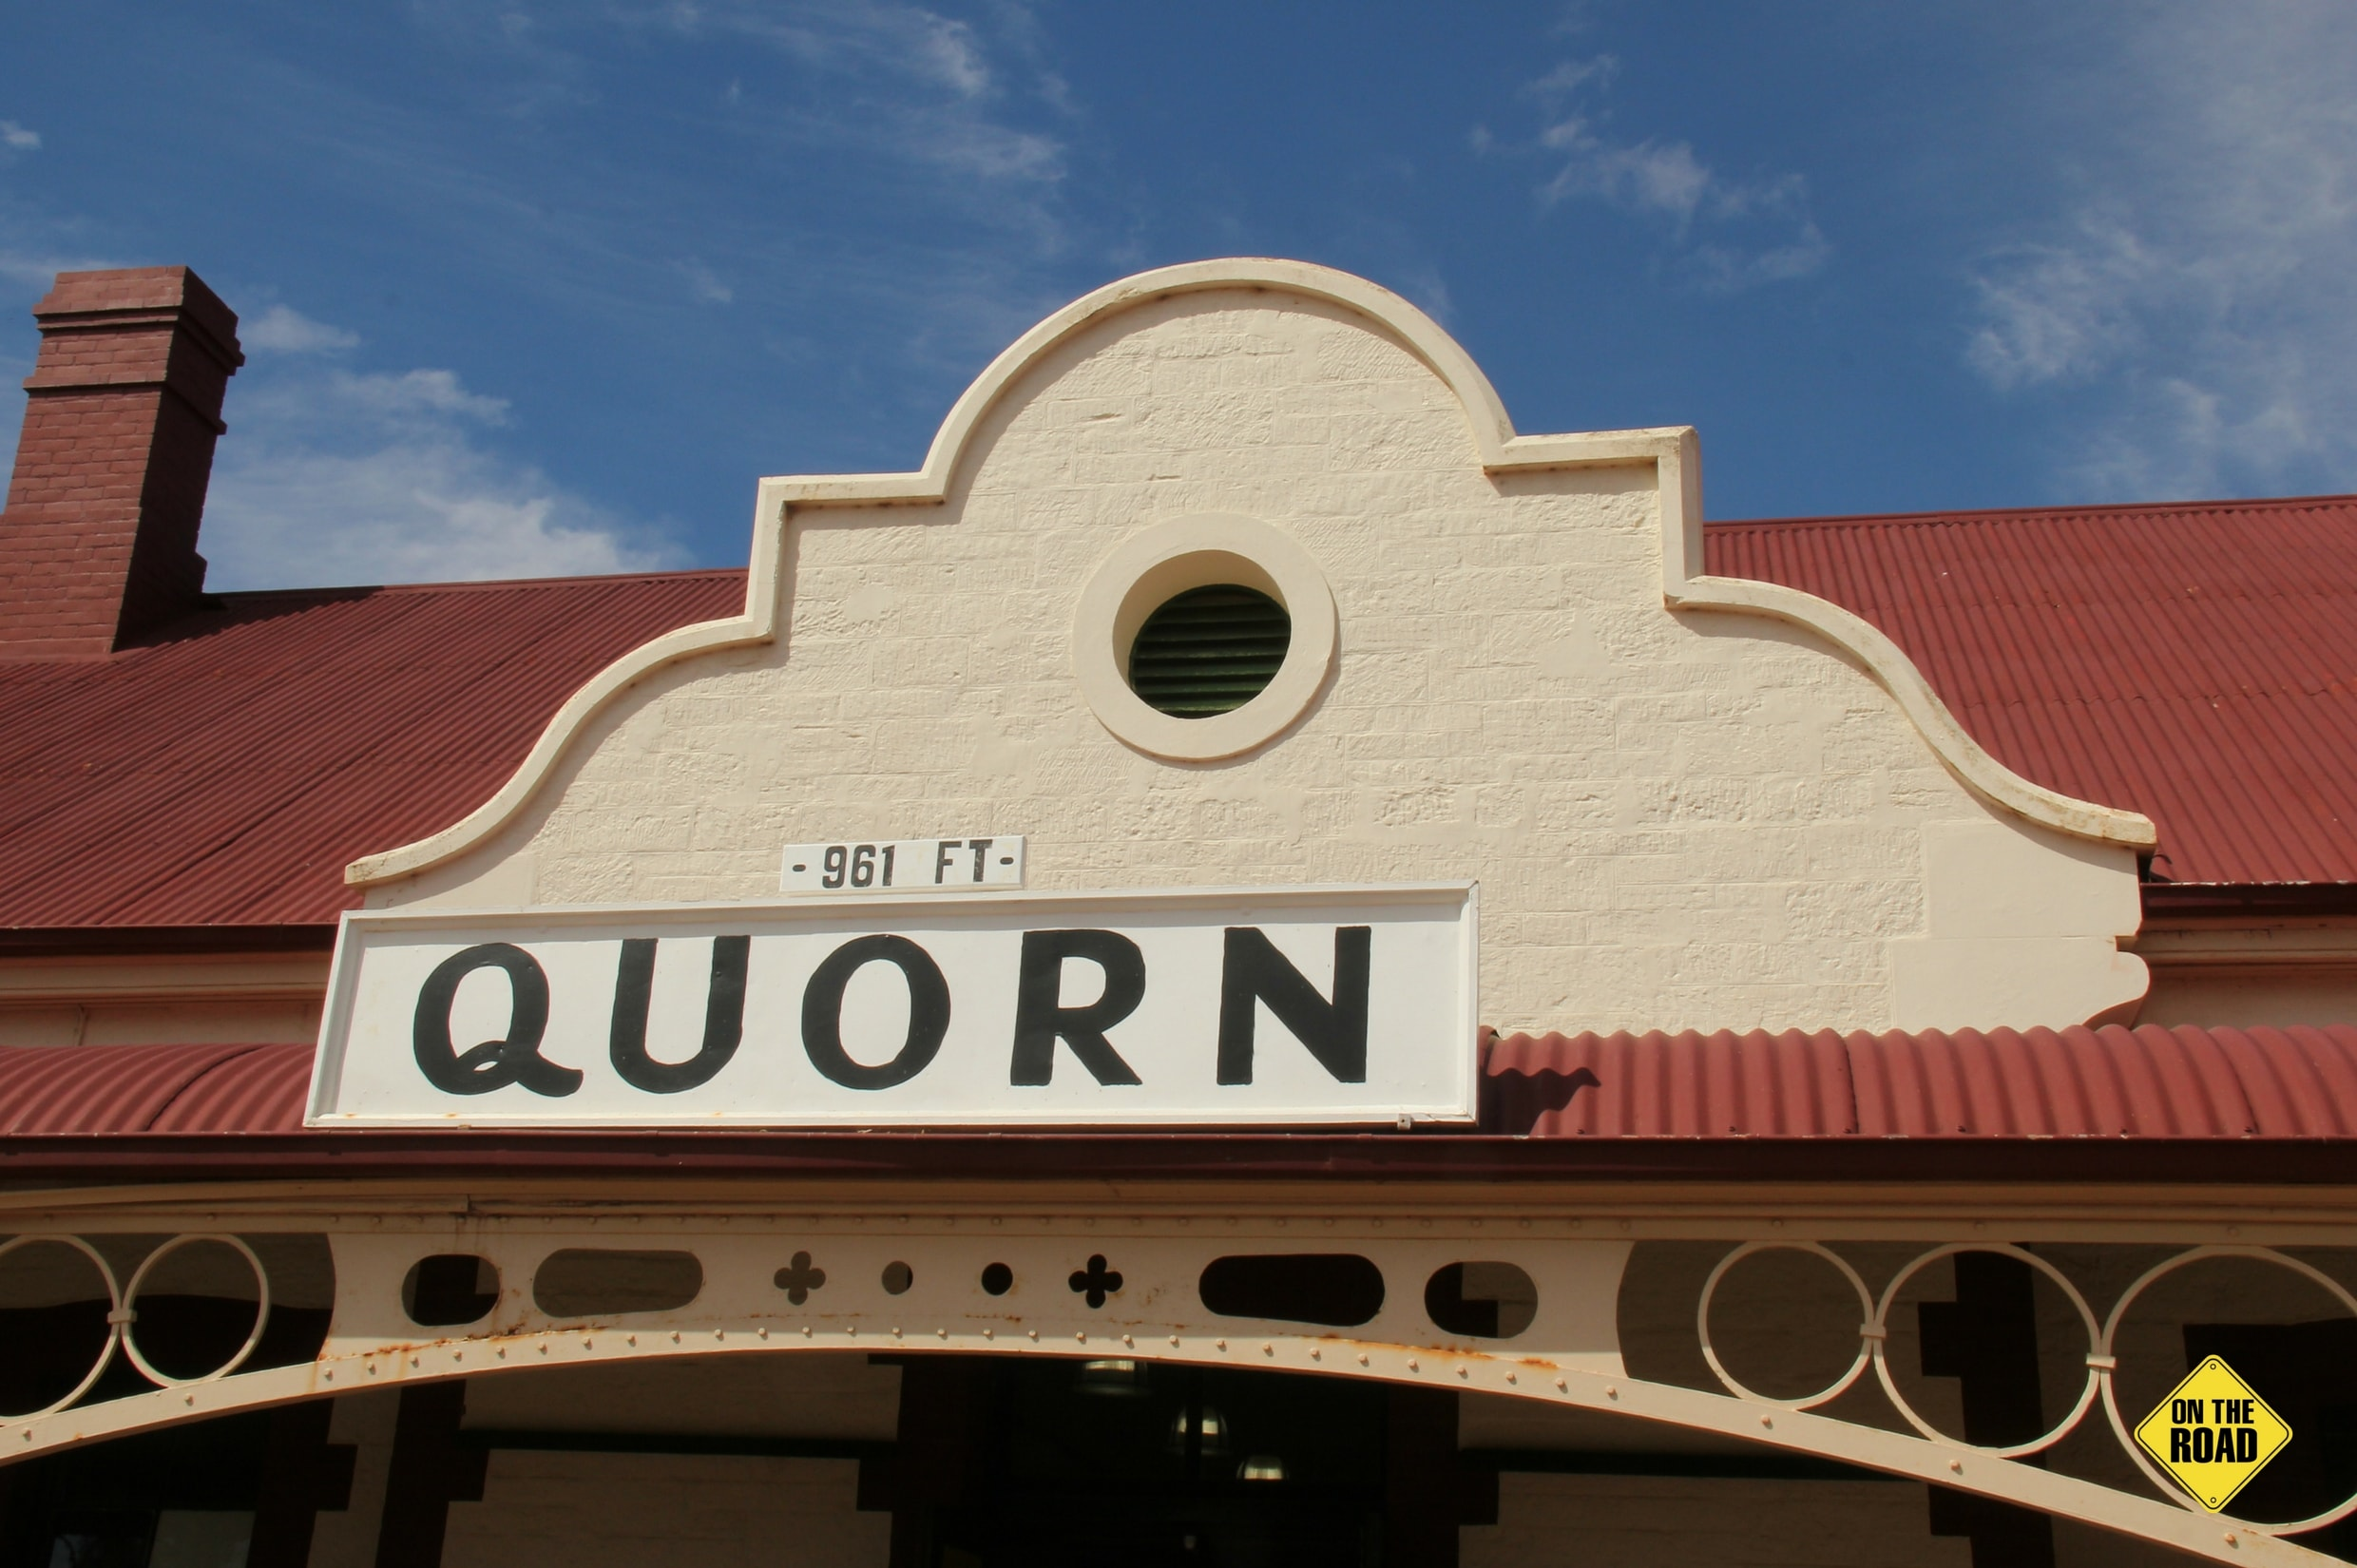 The Quorn Railway Station